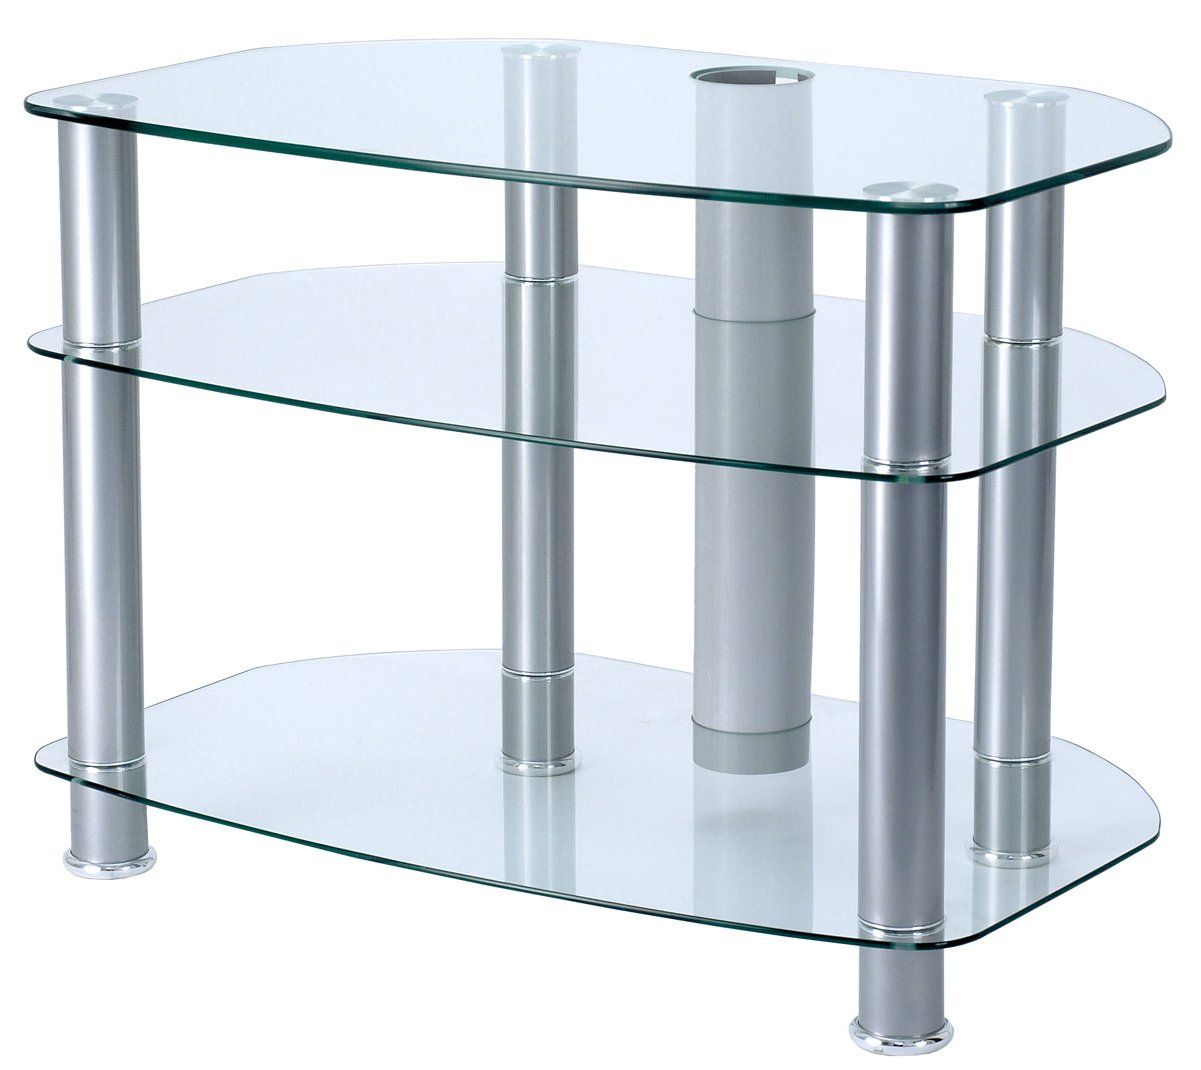 Alphason Clear Glass Tv Stand For Up To 32 Tvs Our New House  # Alphason Meuble Tv